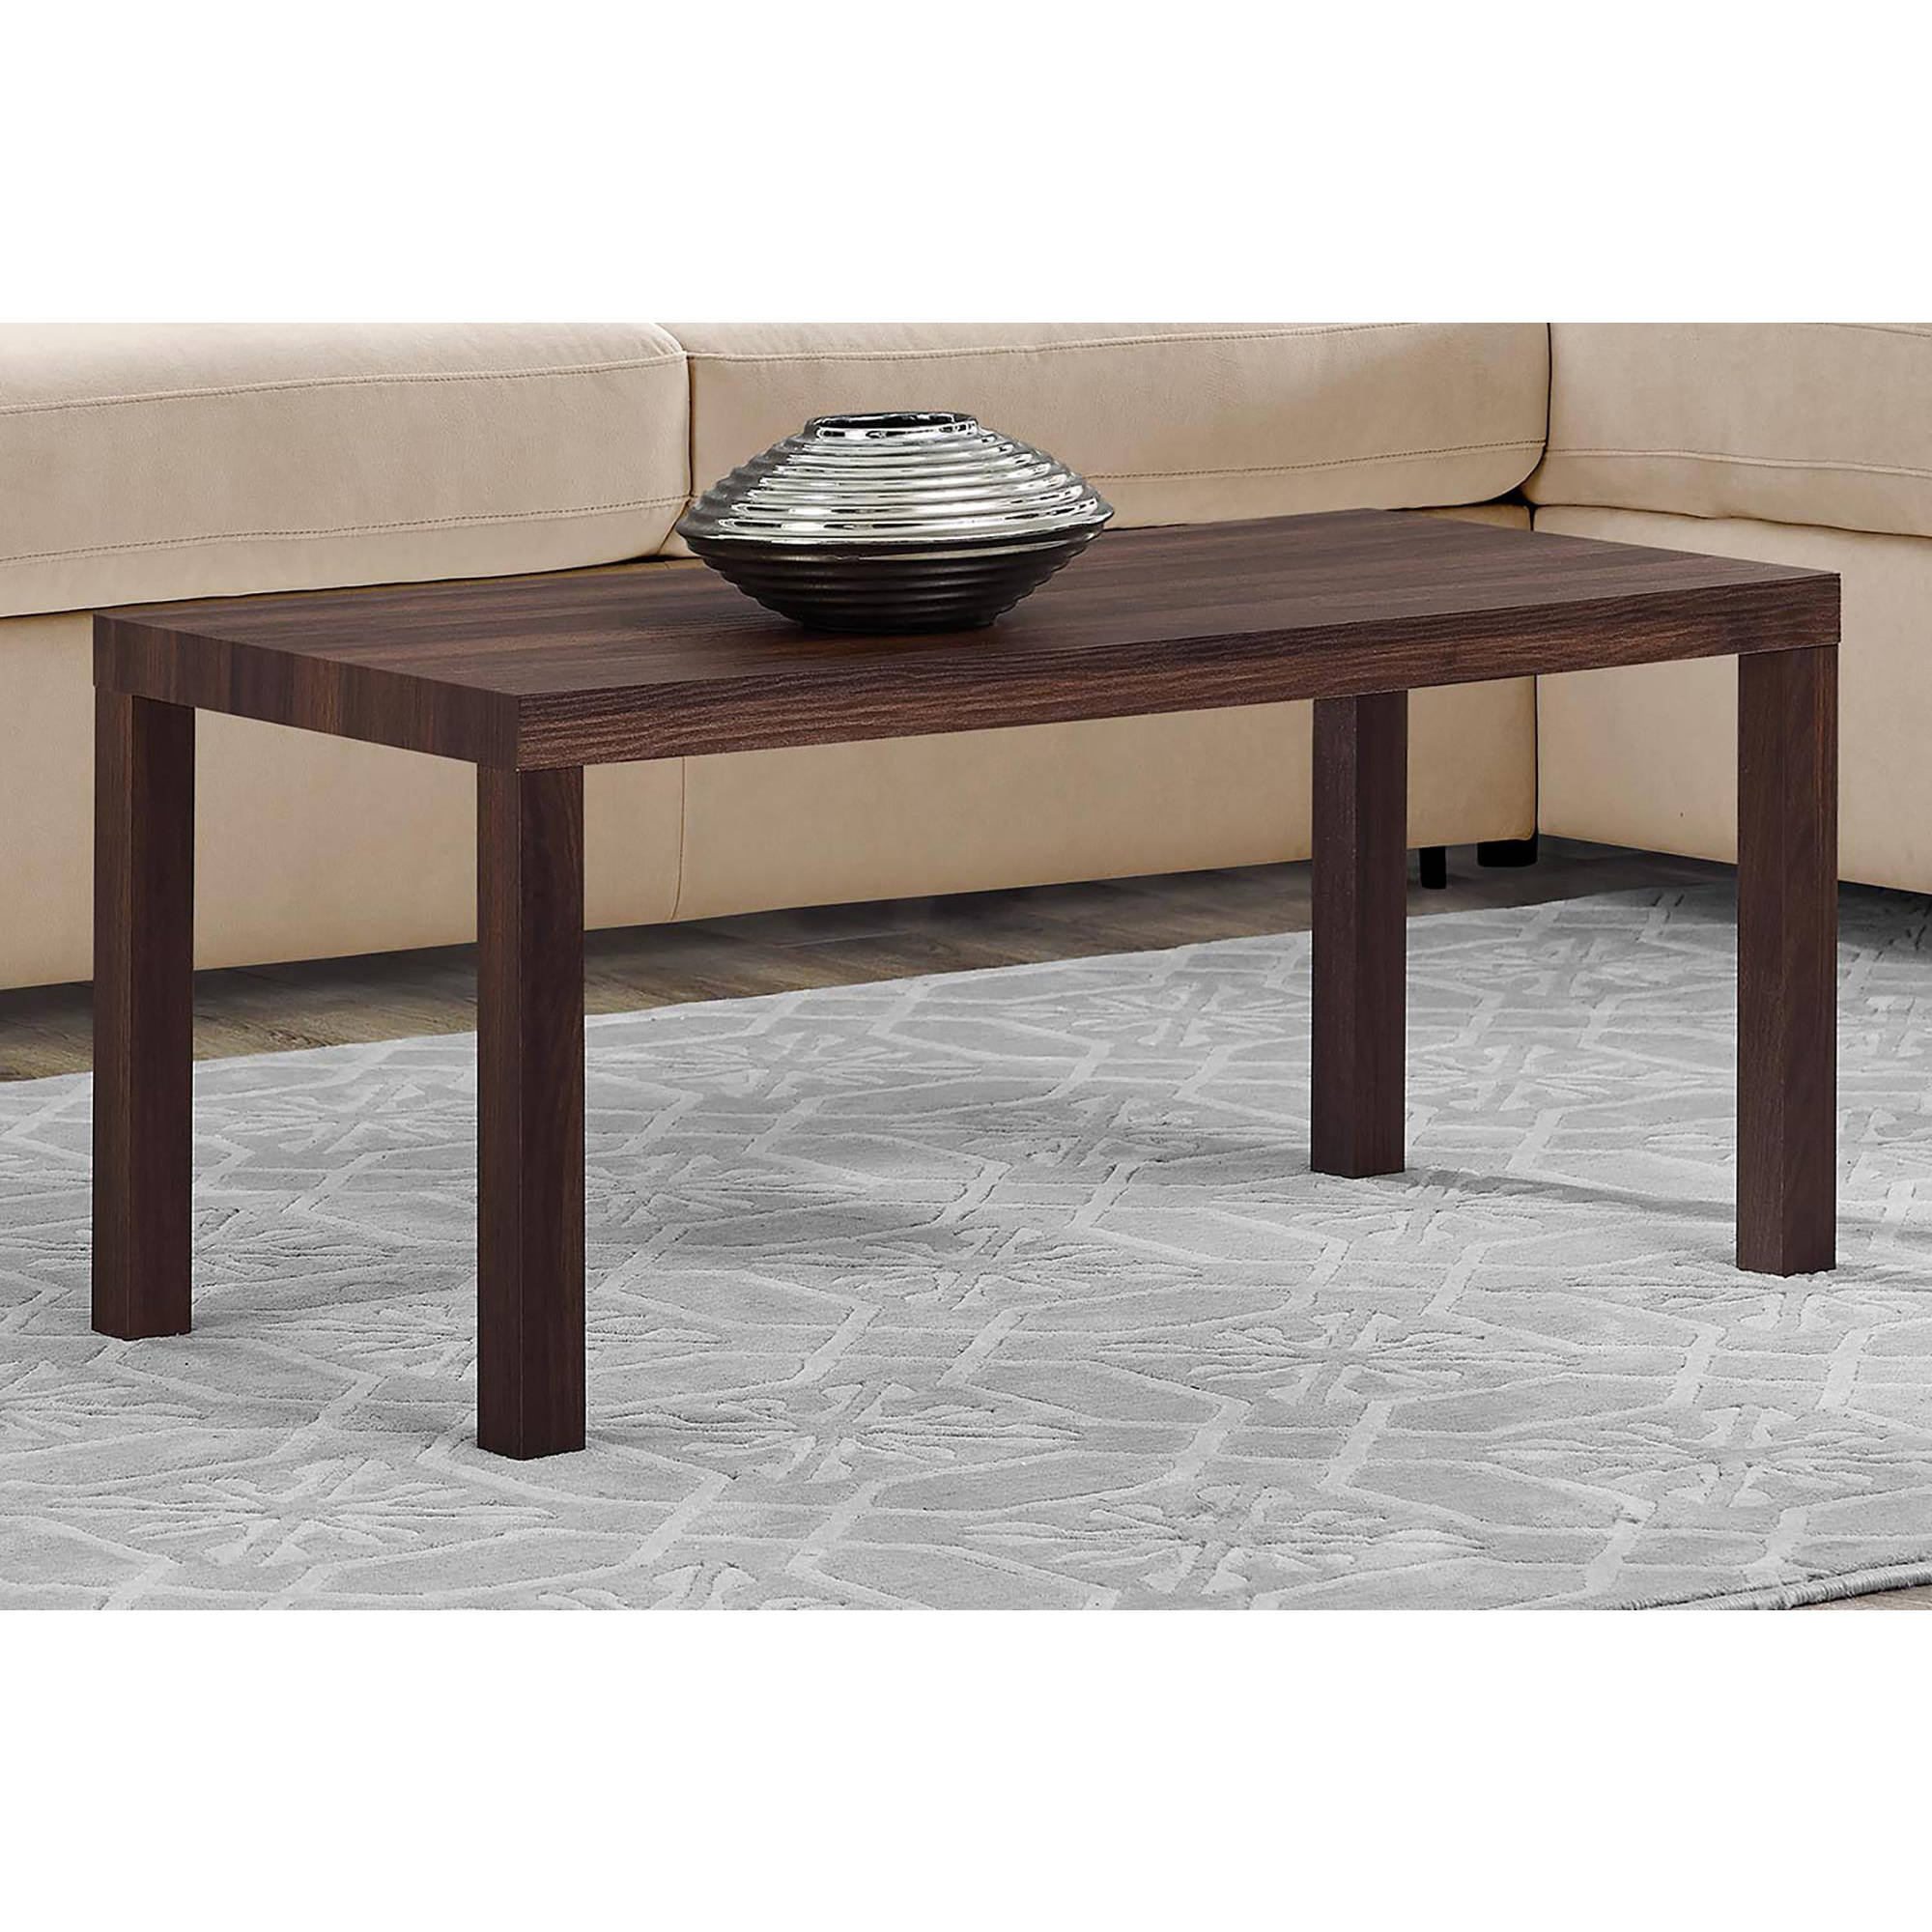 Mainstays Parsons Coffee Table, Multiple Colors